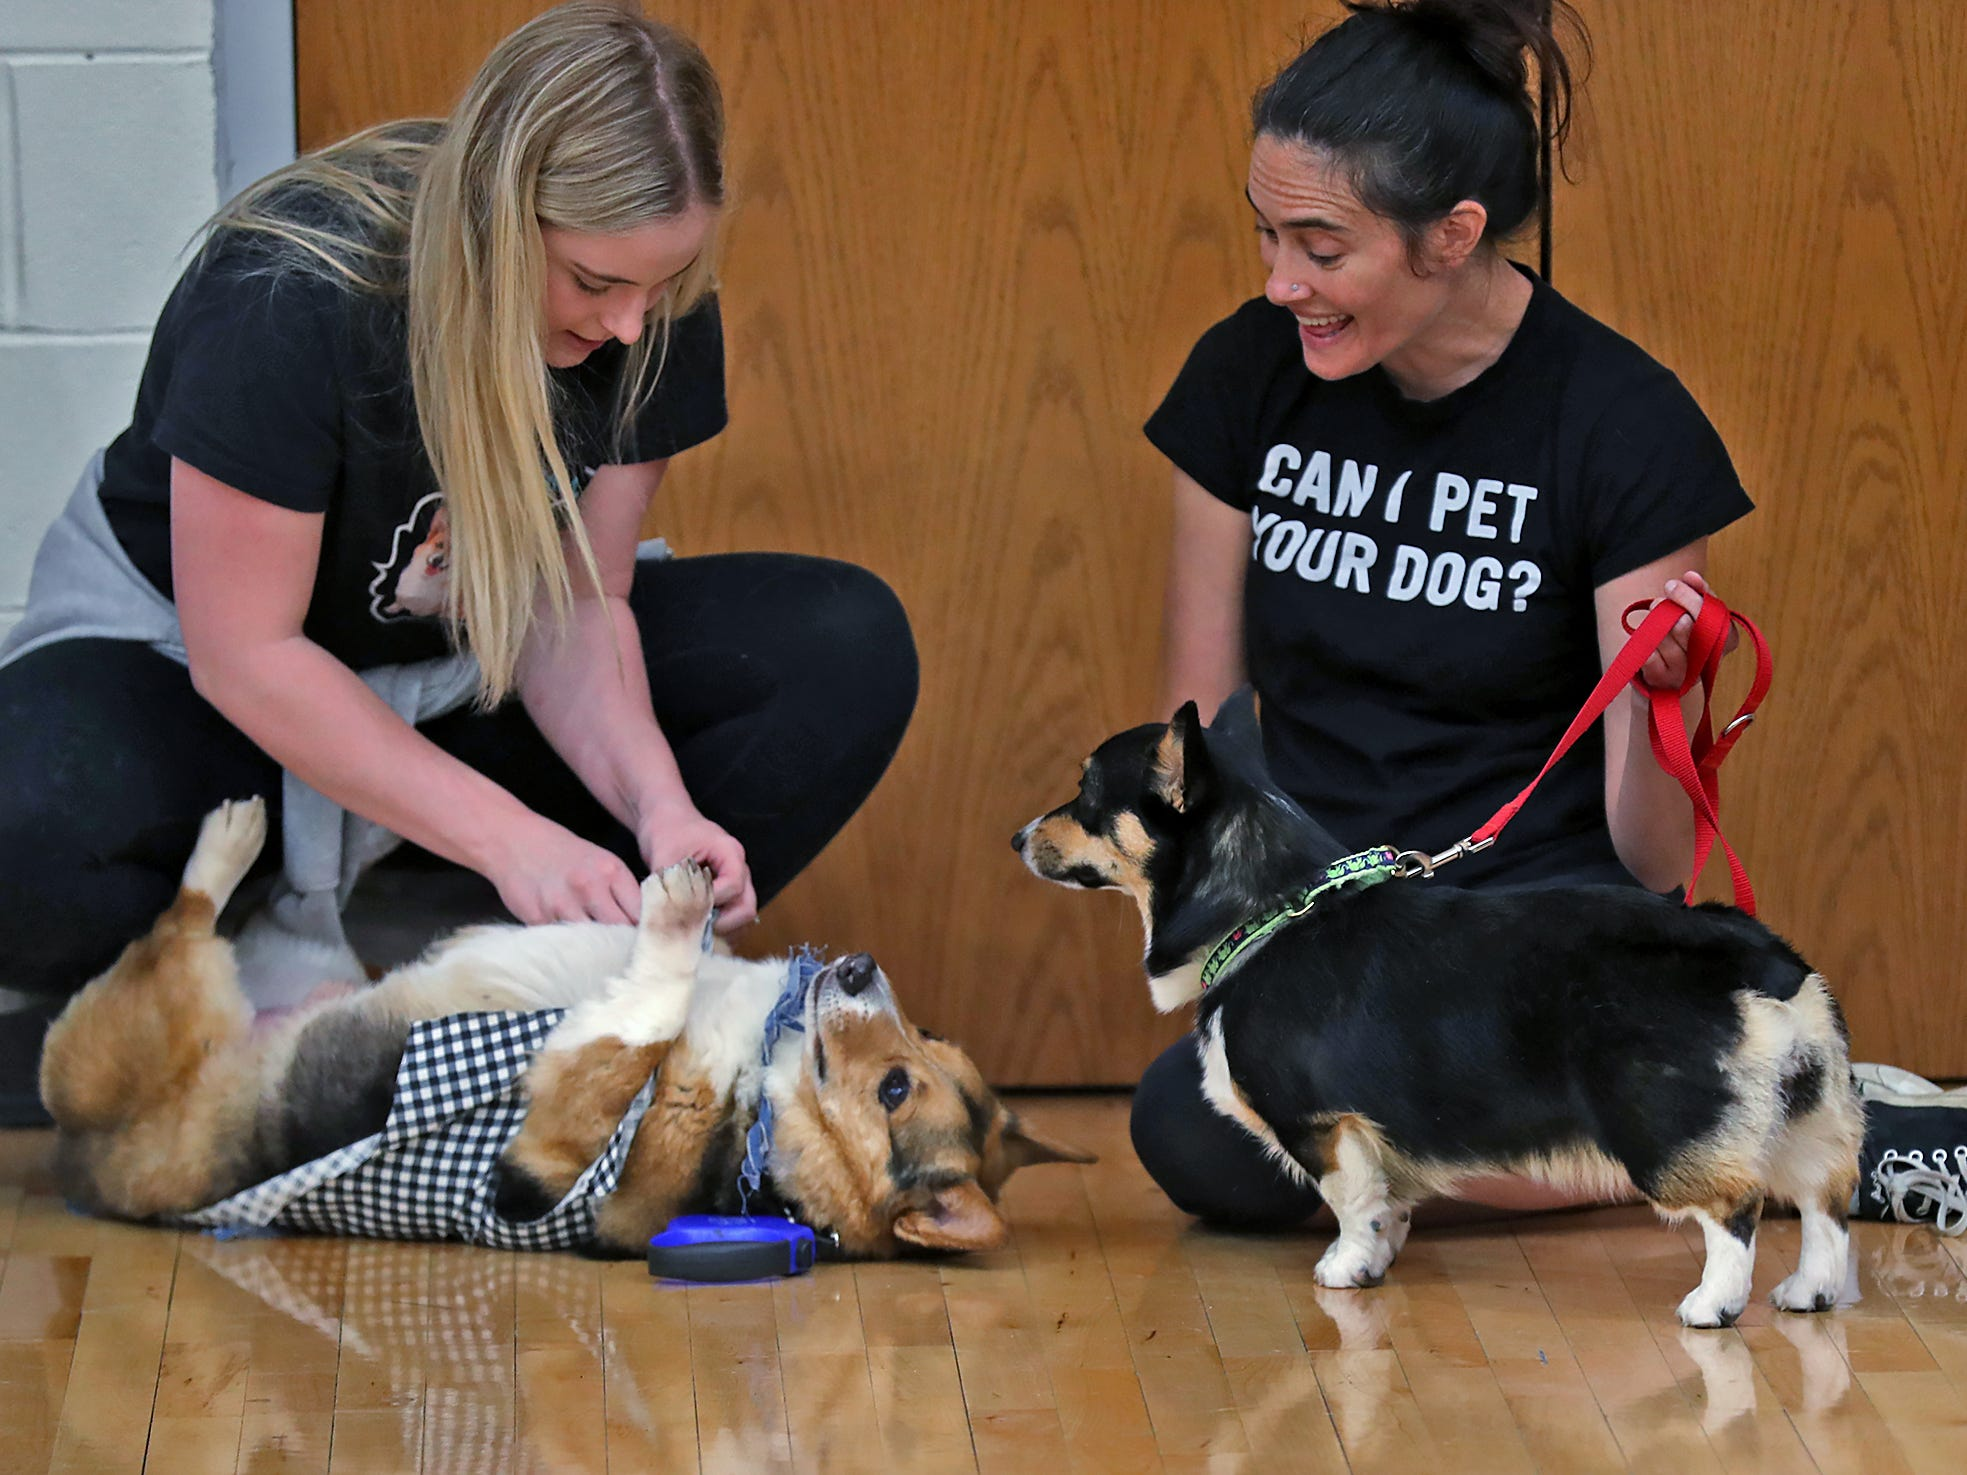 Katie Bottorff, left, with Maverick and Whitney Lazzara with Ruby chat between events at the Indianapolis Corgi Limbo & Costume Contest at IUPUI, Sunday, April 14, 2019.  The event benefits children orphaned by HIV/AIDS in eSwatini, Africa.  It is presented by the Give Hope, Fight Poverty IUPUI chapter.